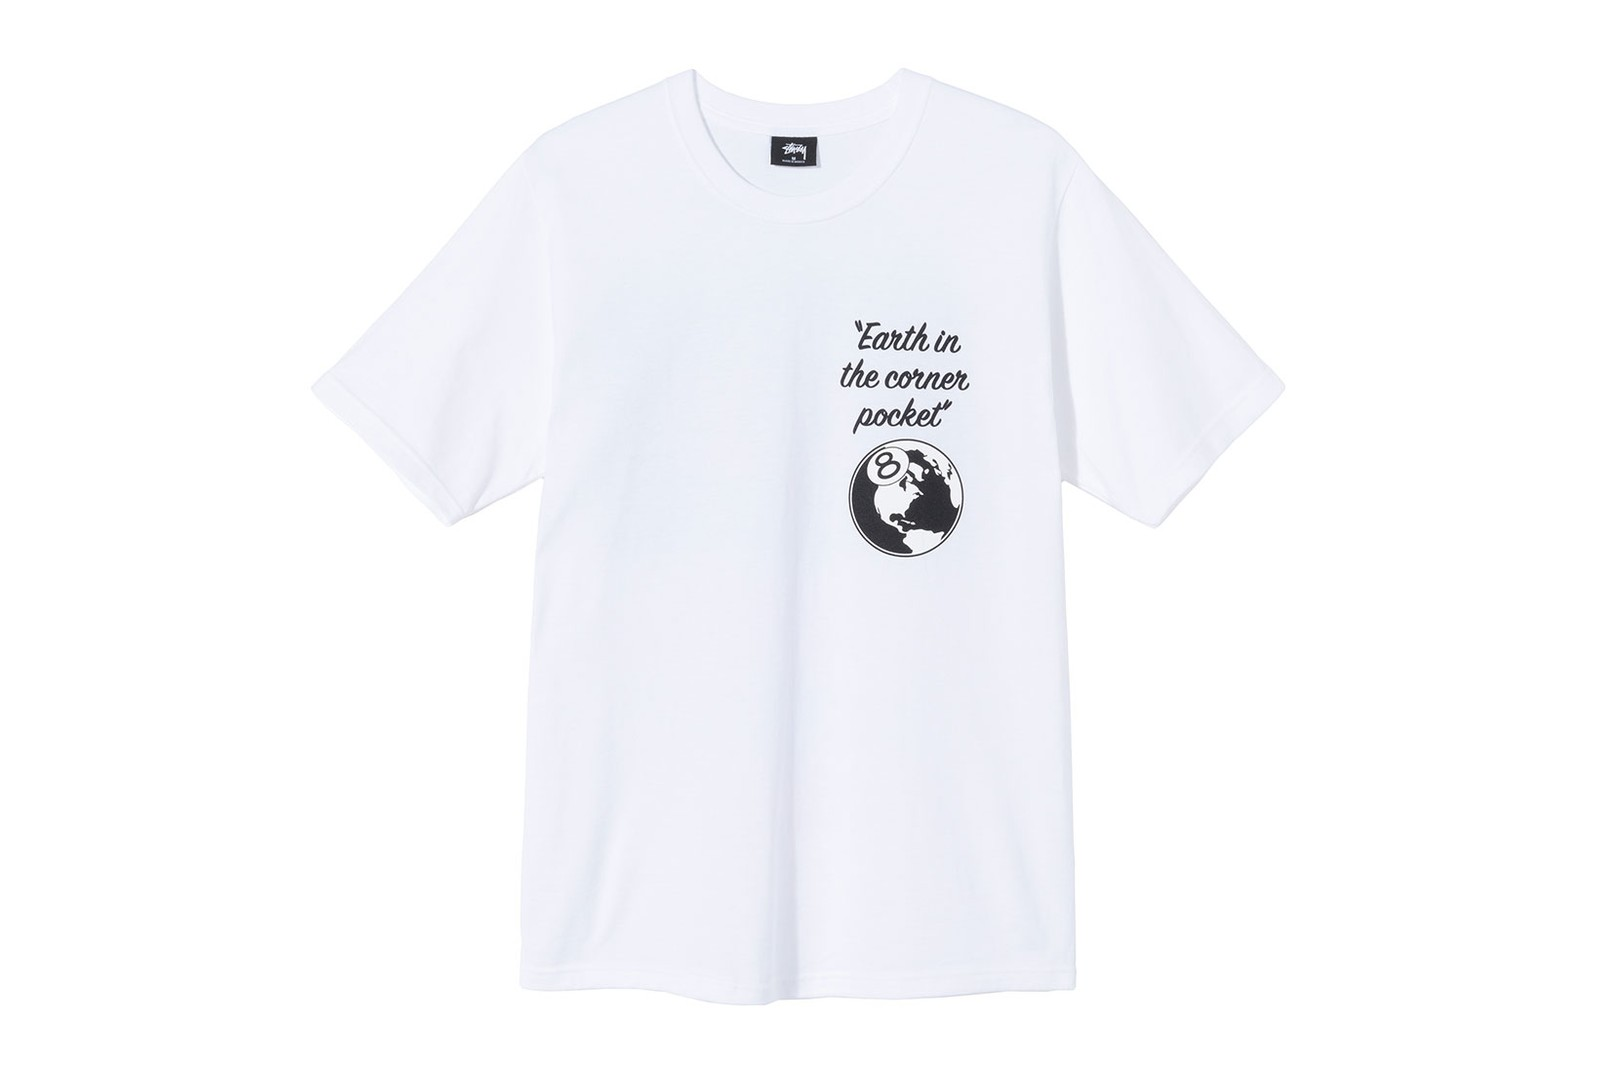 stussy 40th anniversary ist varsity jacket ring t-shirt limited edition release racism equal justice initiative